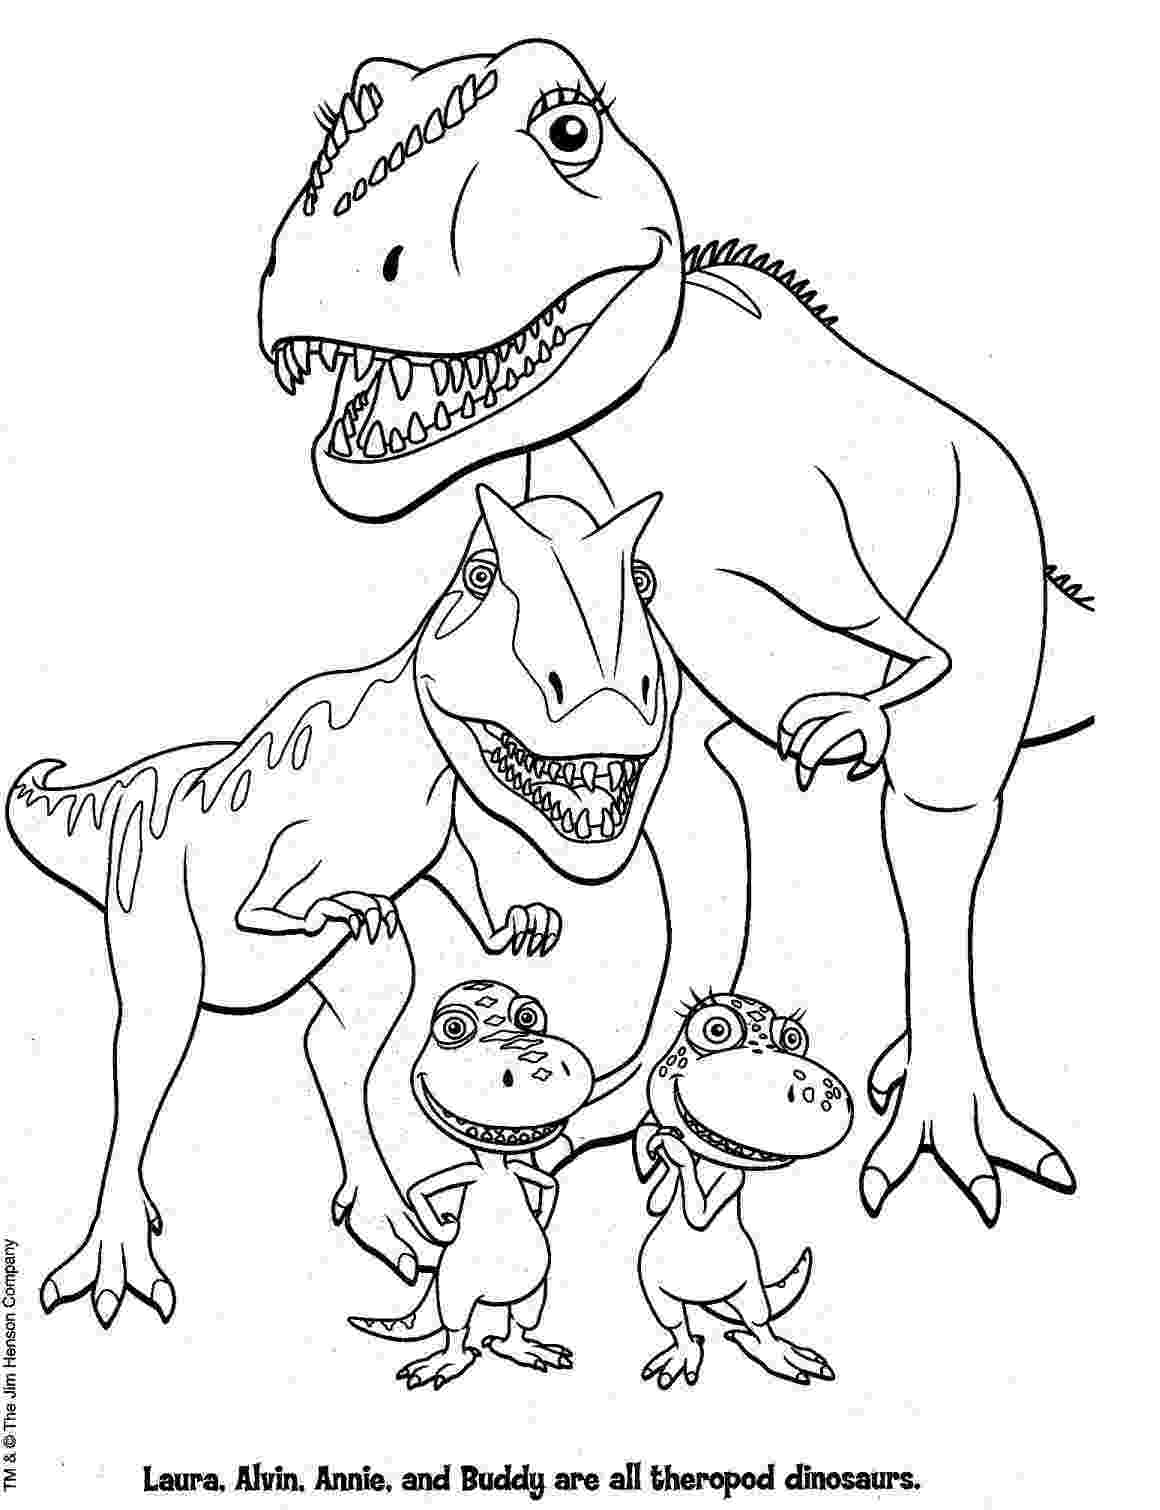 dinosaur coloring pages free printable free printable dinosaur coloring pages for kids coloring printable pages dinosaur free